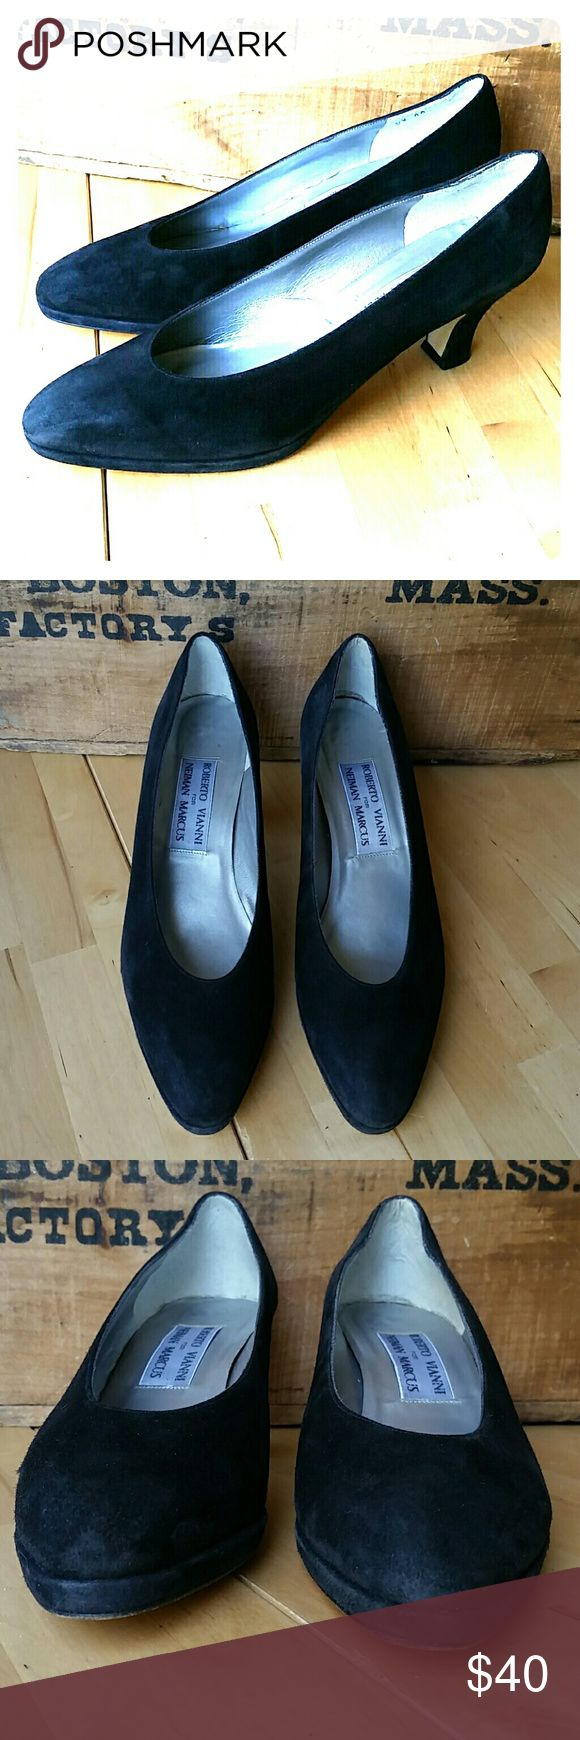 Roberto Vianni Neiman Marcus Black Suede Pumps Luxurious shoe in a rare, narrow size, 9.5AA!!   Roberto Vianni design for Neiman Marcus in a rich, black suede.   All leather. Made in Italy. Excellent Used Condition. Roberto Vianni for Neiman Marcus Shoes Heels